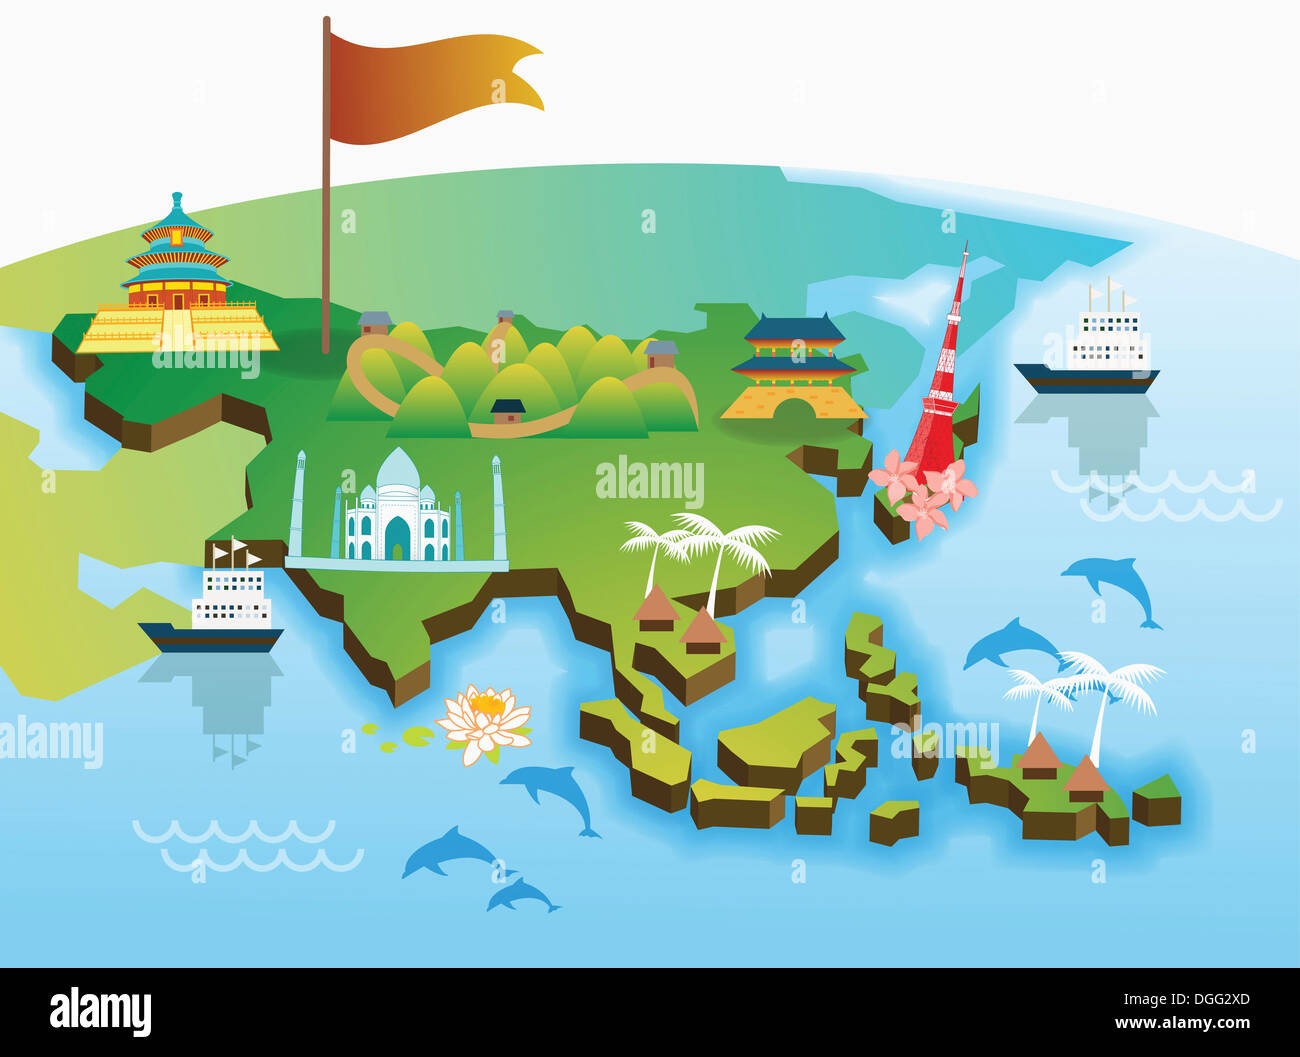 an illustration of the Asian map Stock Photo: 61819141 - Alamy